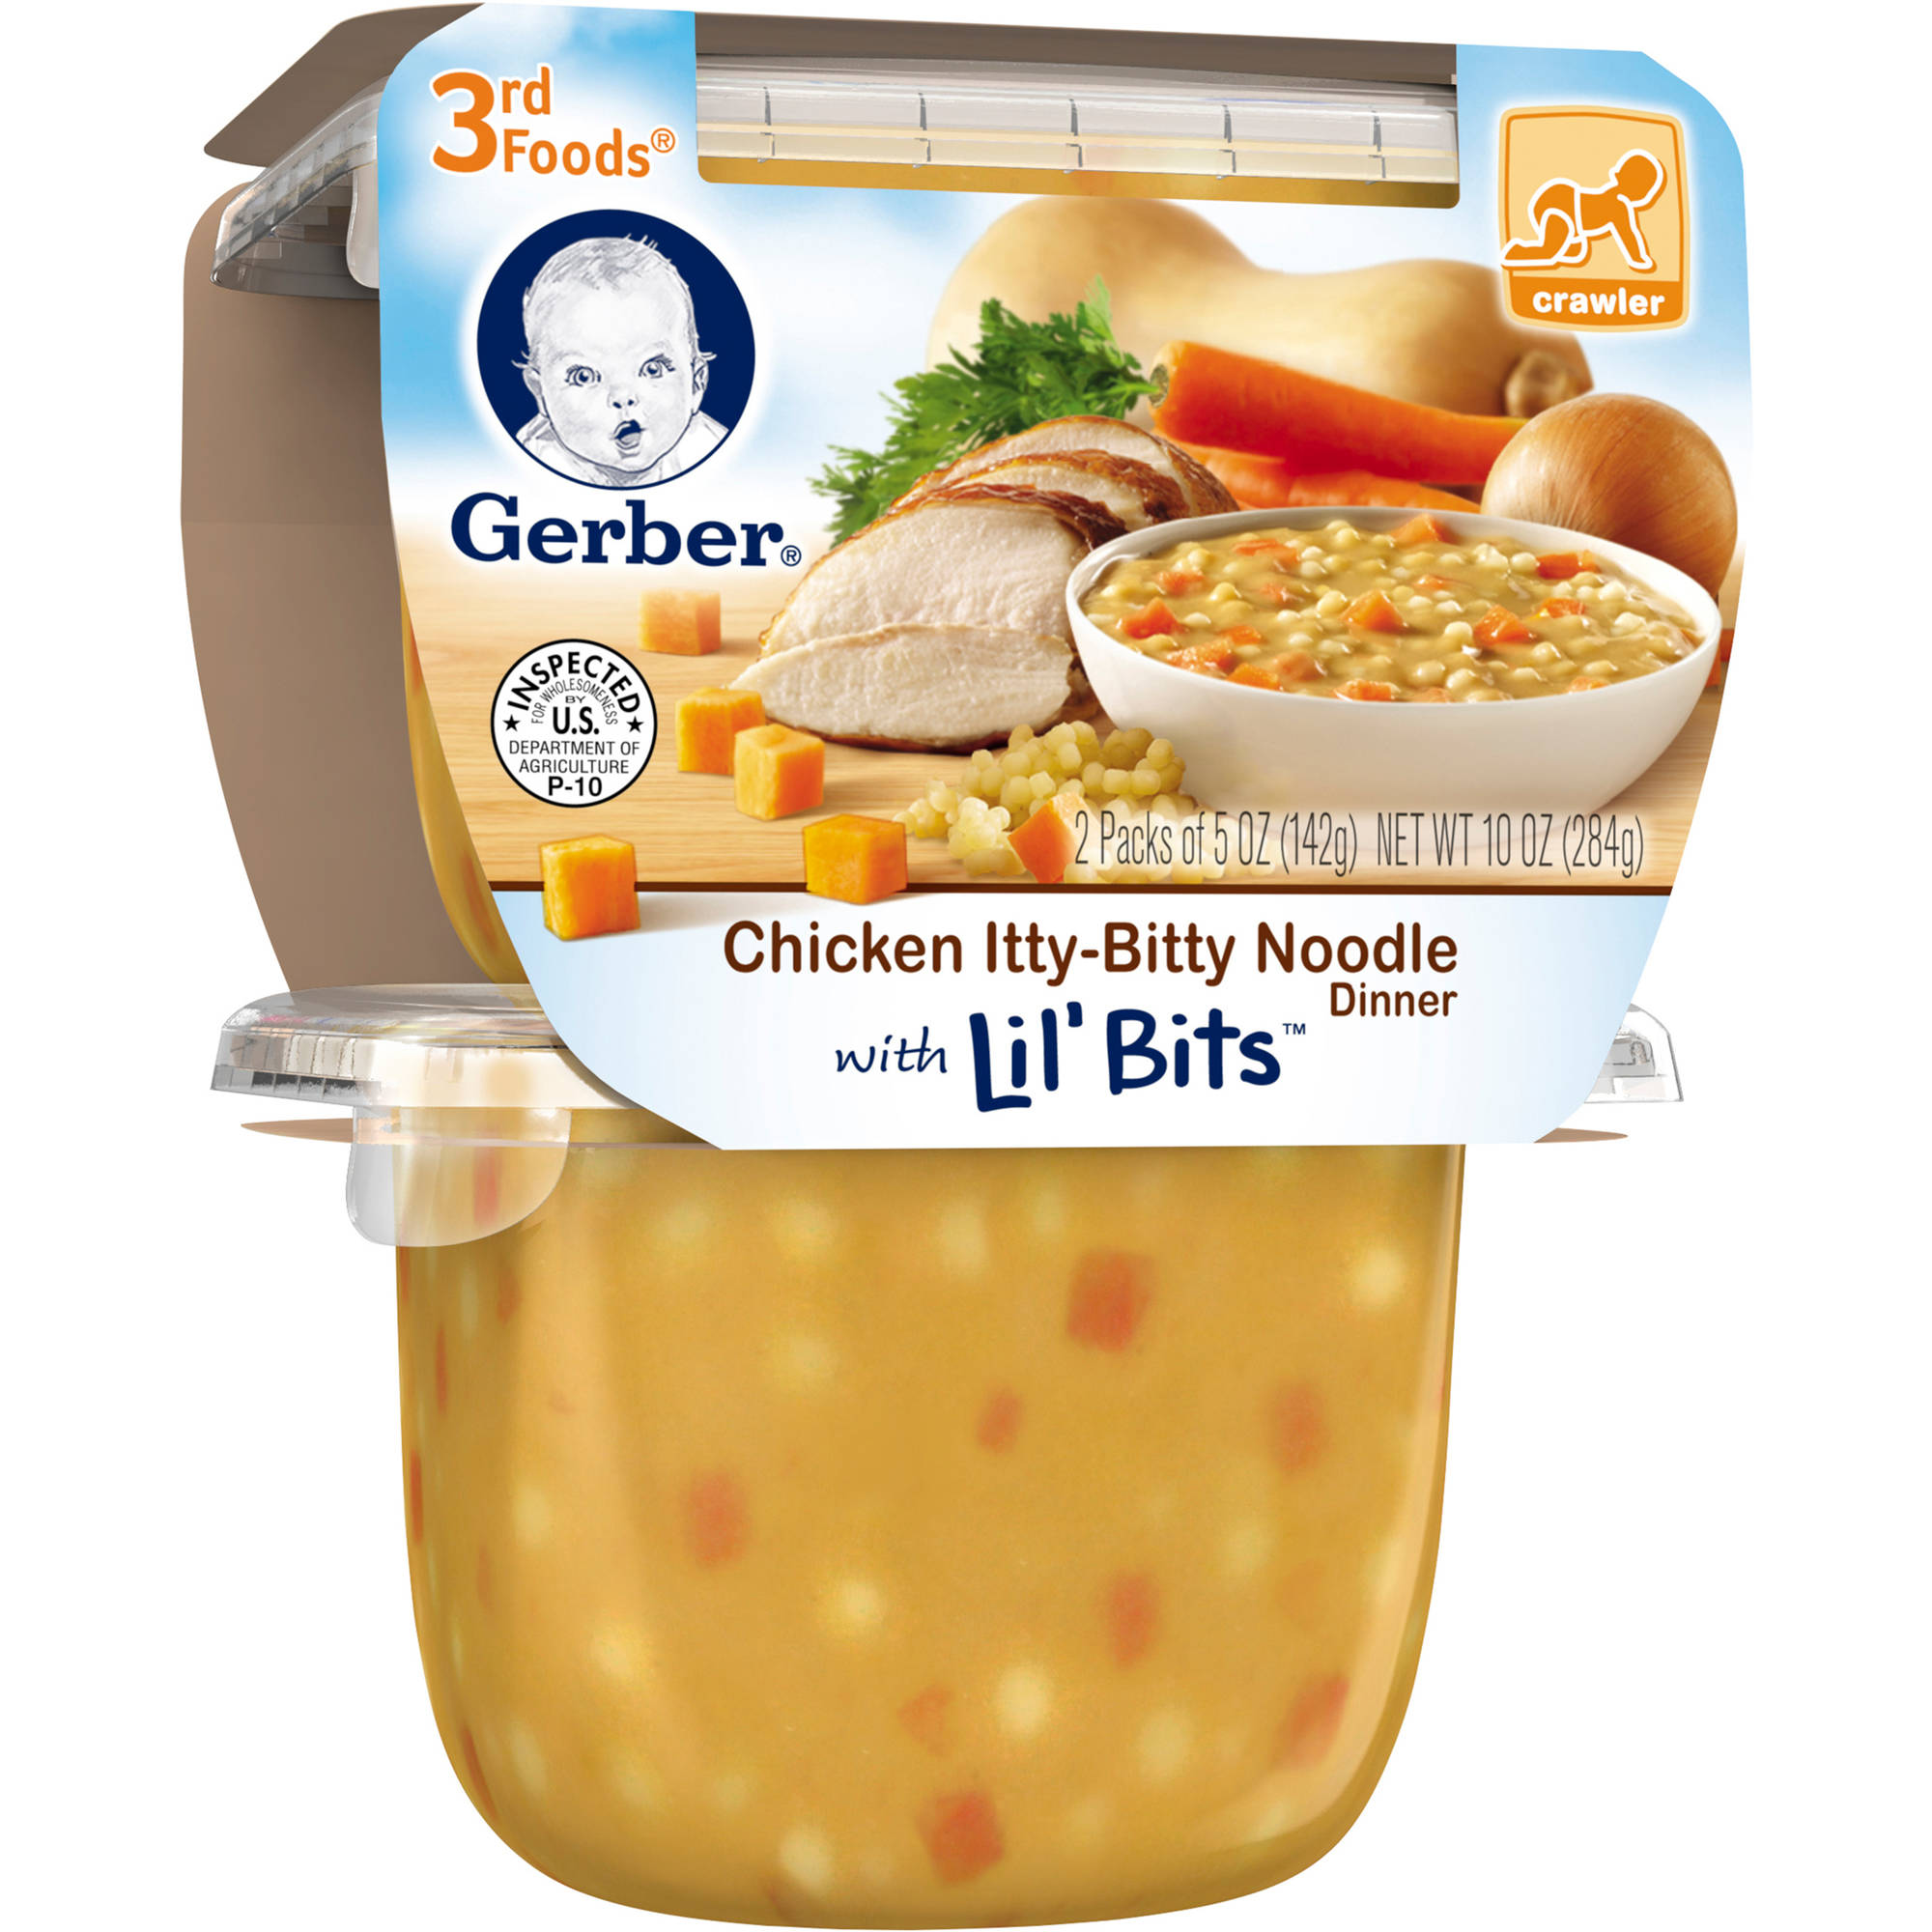 Gerber 3rd Foods Chicken Itty-Bitty Noodle Dinner with Lil' Bits, 5 oz, (Pack of 6)